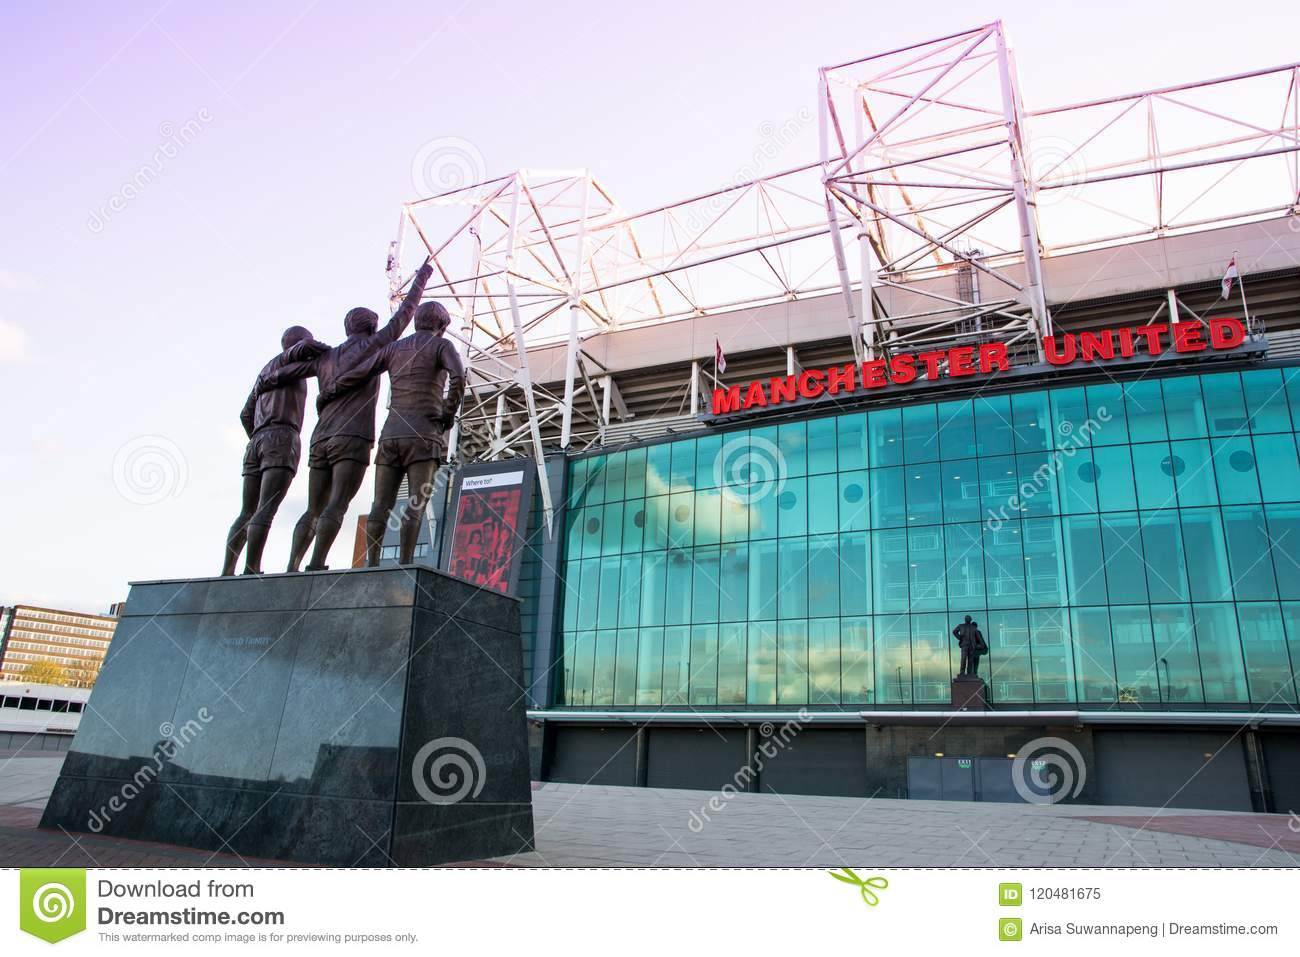 old trafford stadium home of manchester united editorial image image of football trinity 120481675 https www dreamstime com old trafford stadium home manchester united united trinity statue front old trafford stadium manchester united image120481675